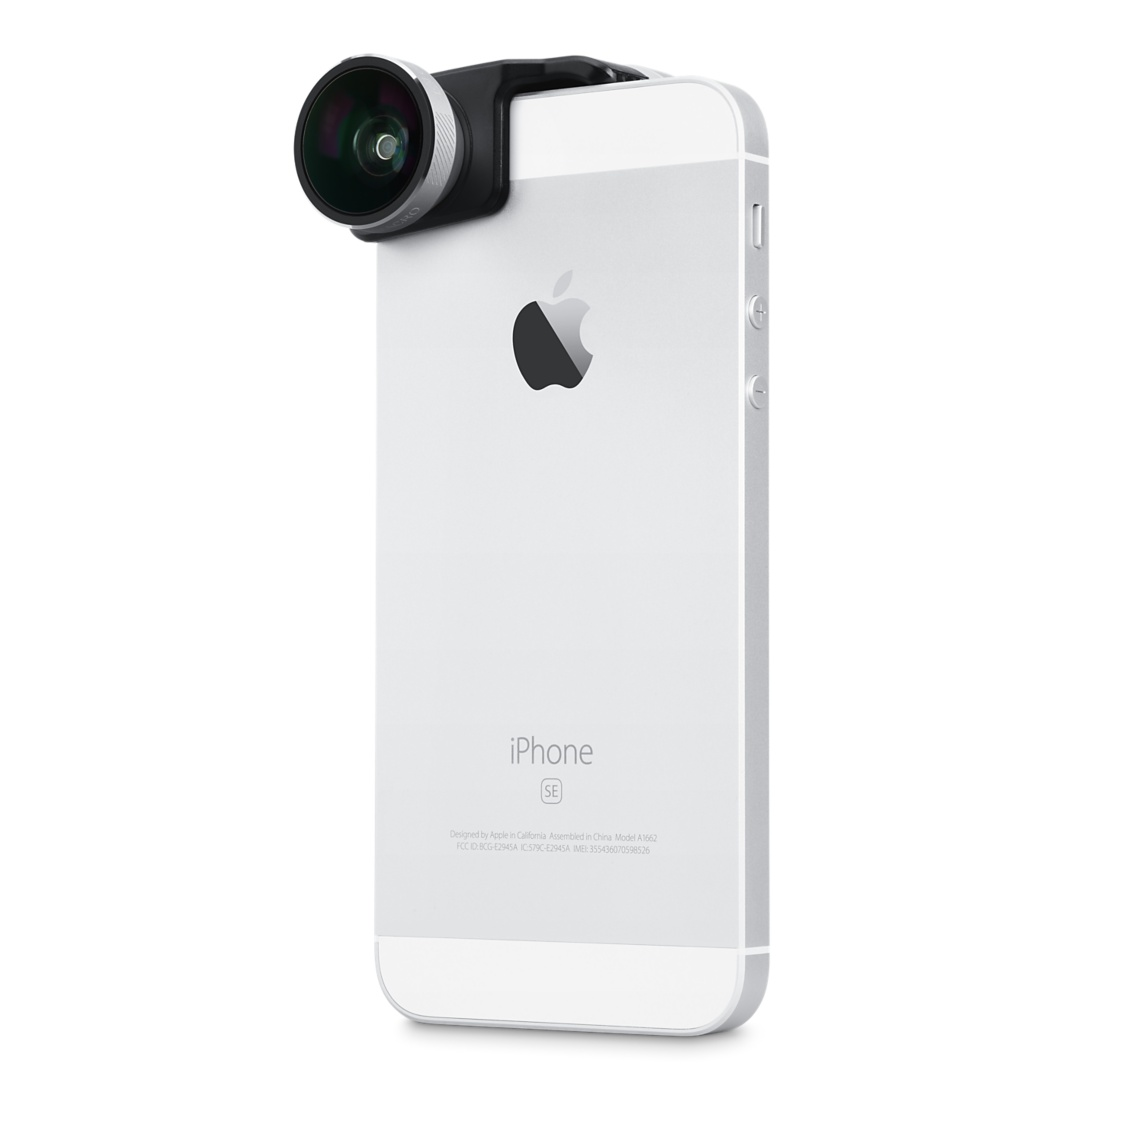 olloclip 4-IN-1 Lens for iPhone SE